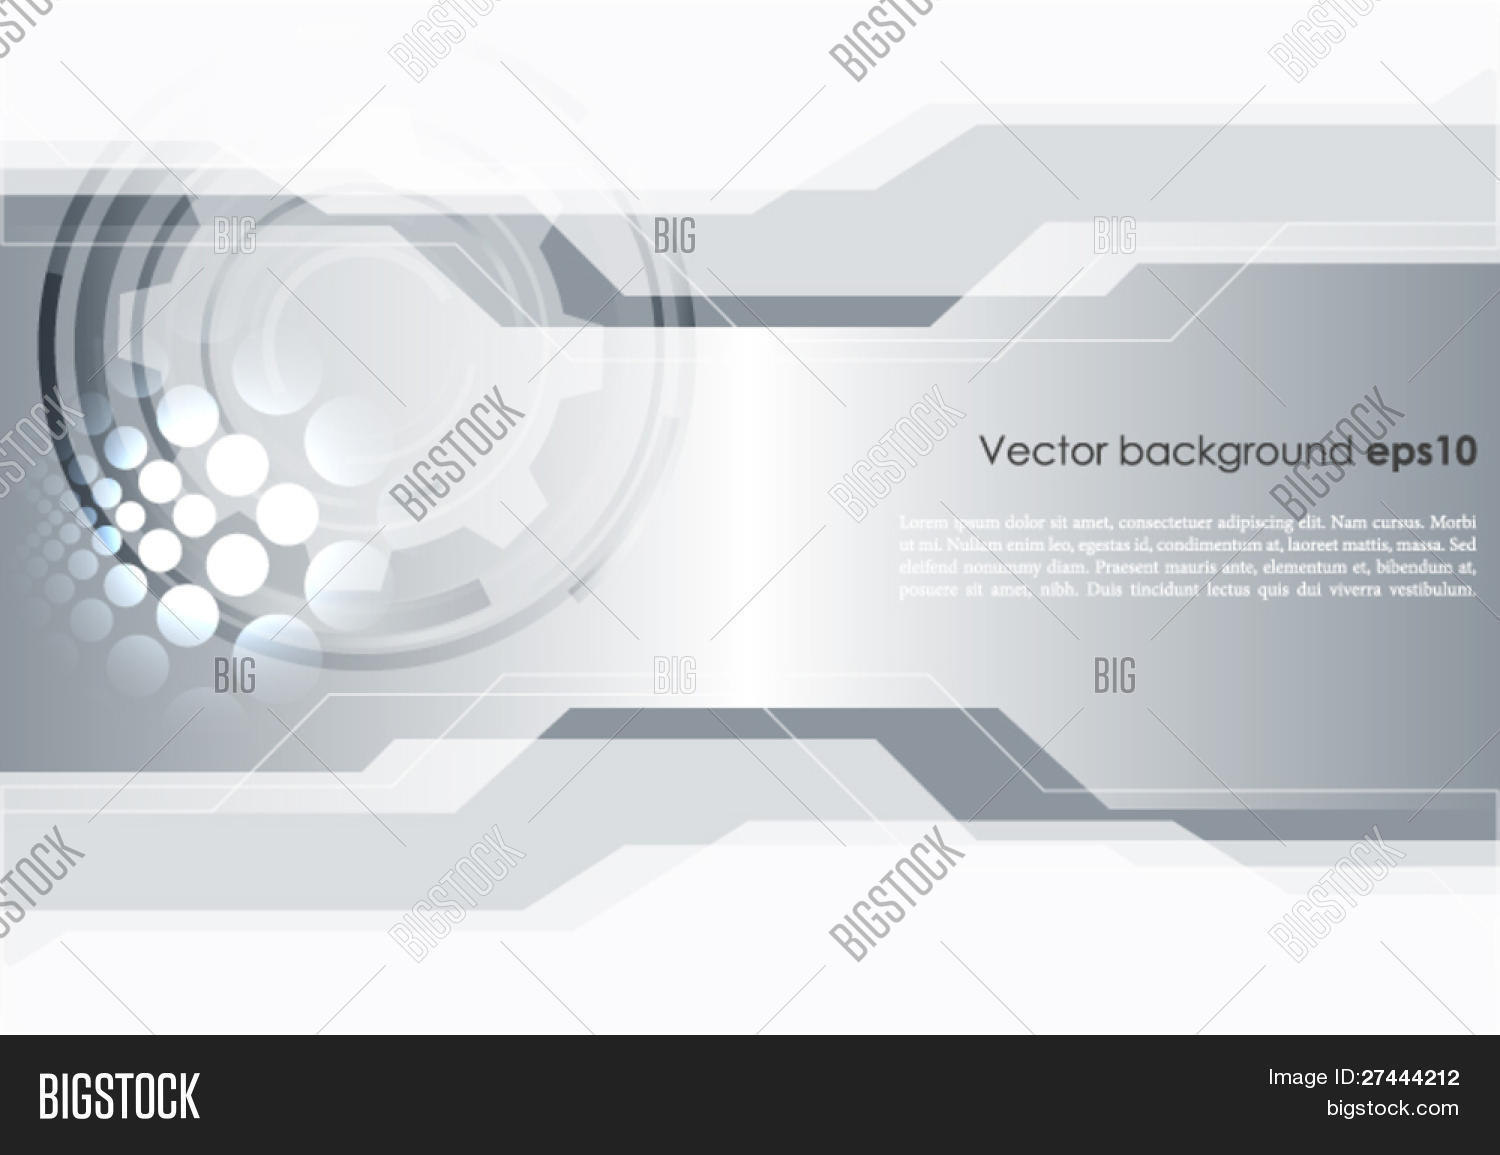 abstract,abstract background,abstract backgrounds,abstract background vector,advertise,art,background,banner,bend,bright,brochure,business,company,composition,concept,cool,creative,design,digital,dot,dotted,element,eps10,futuristic,gear,graphic,grid,grunge,hi-tech,illustration,industrial,isolated,light,line,modern,mosaic,motion,pattern,presentation,rectangle,silver,style,tech,technology,template,texture,trendy,vector,wallpaper,web